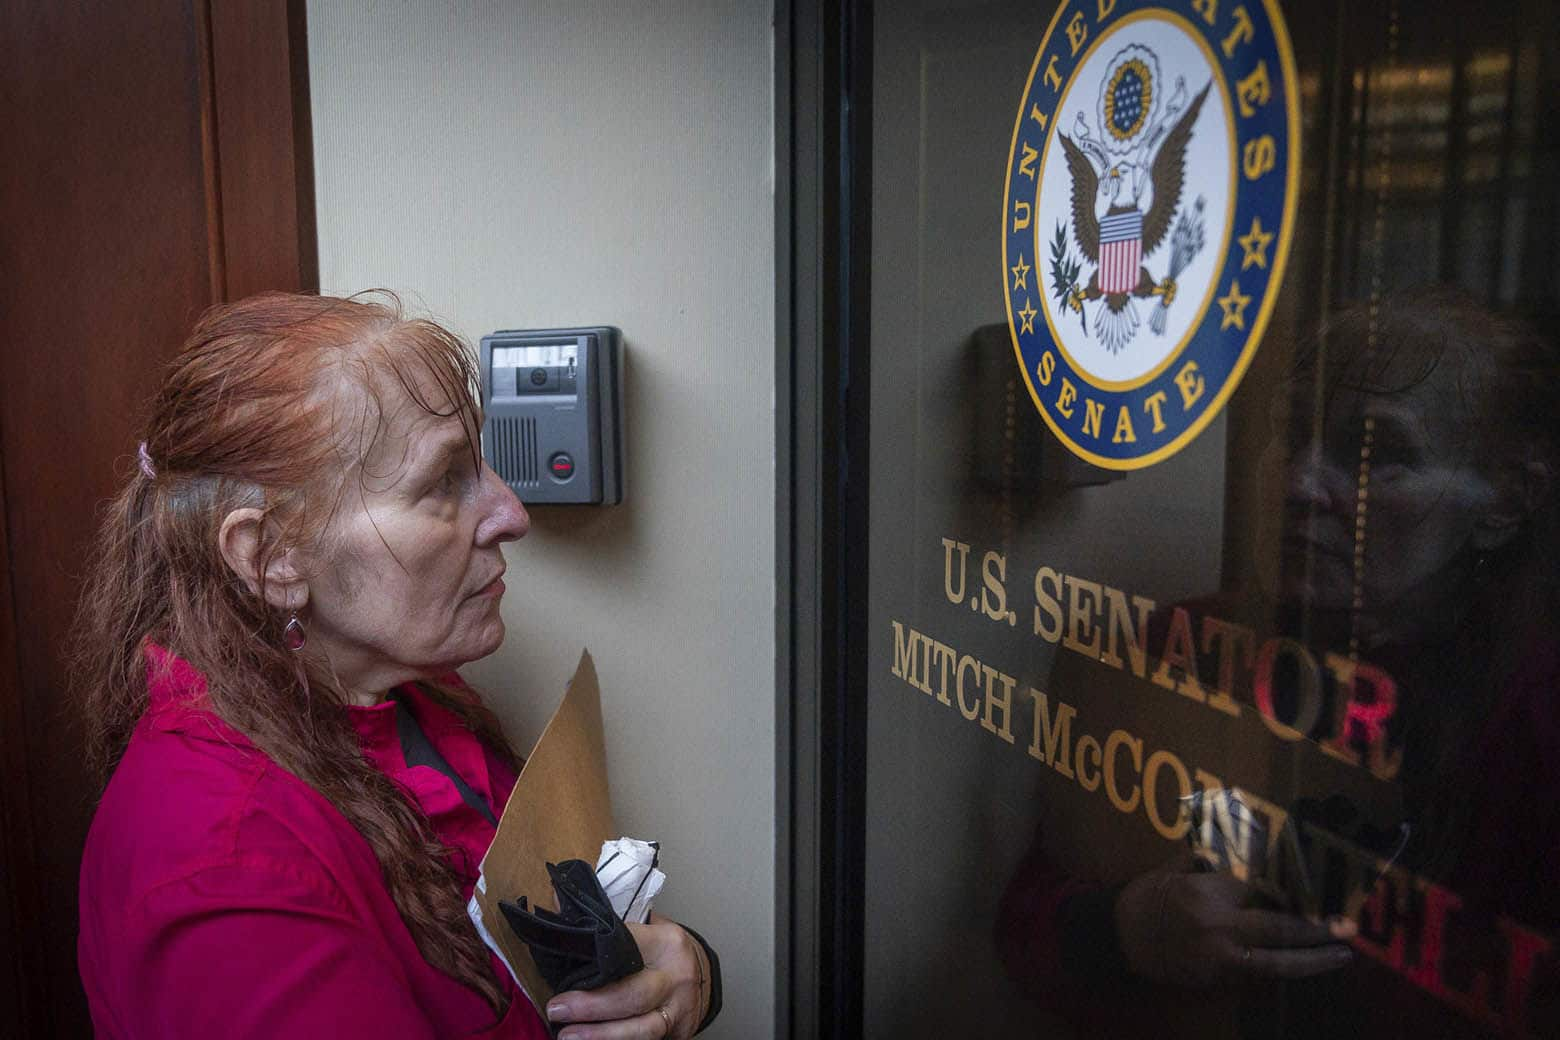 Reese Greer, a furloughed census worker, stands at the locked door of U.S. Sen. Mitch McConnell's office in Lexington, Ky., Wednesday, Jan 23, 2019, during a government shutdown protest. (AP Photo/Bryan Woolston)